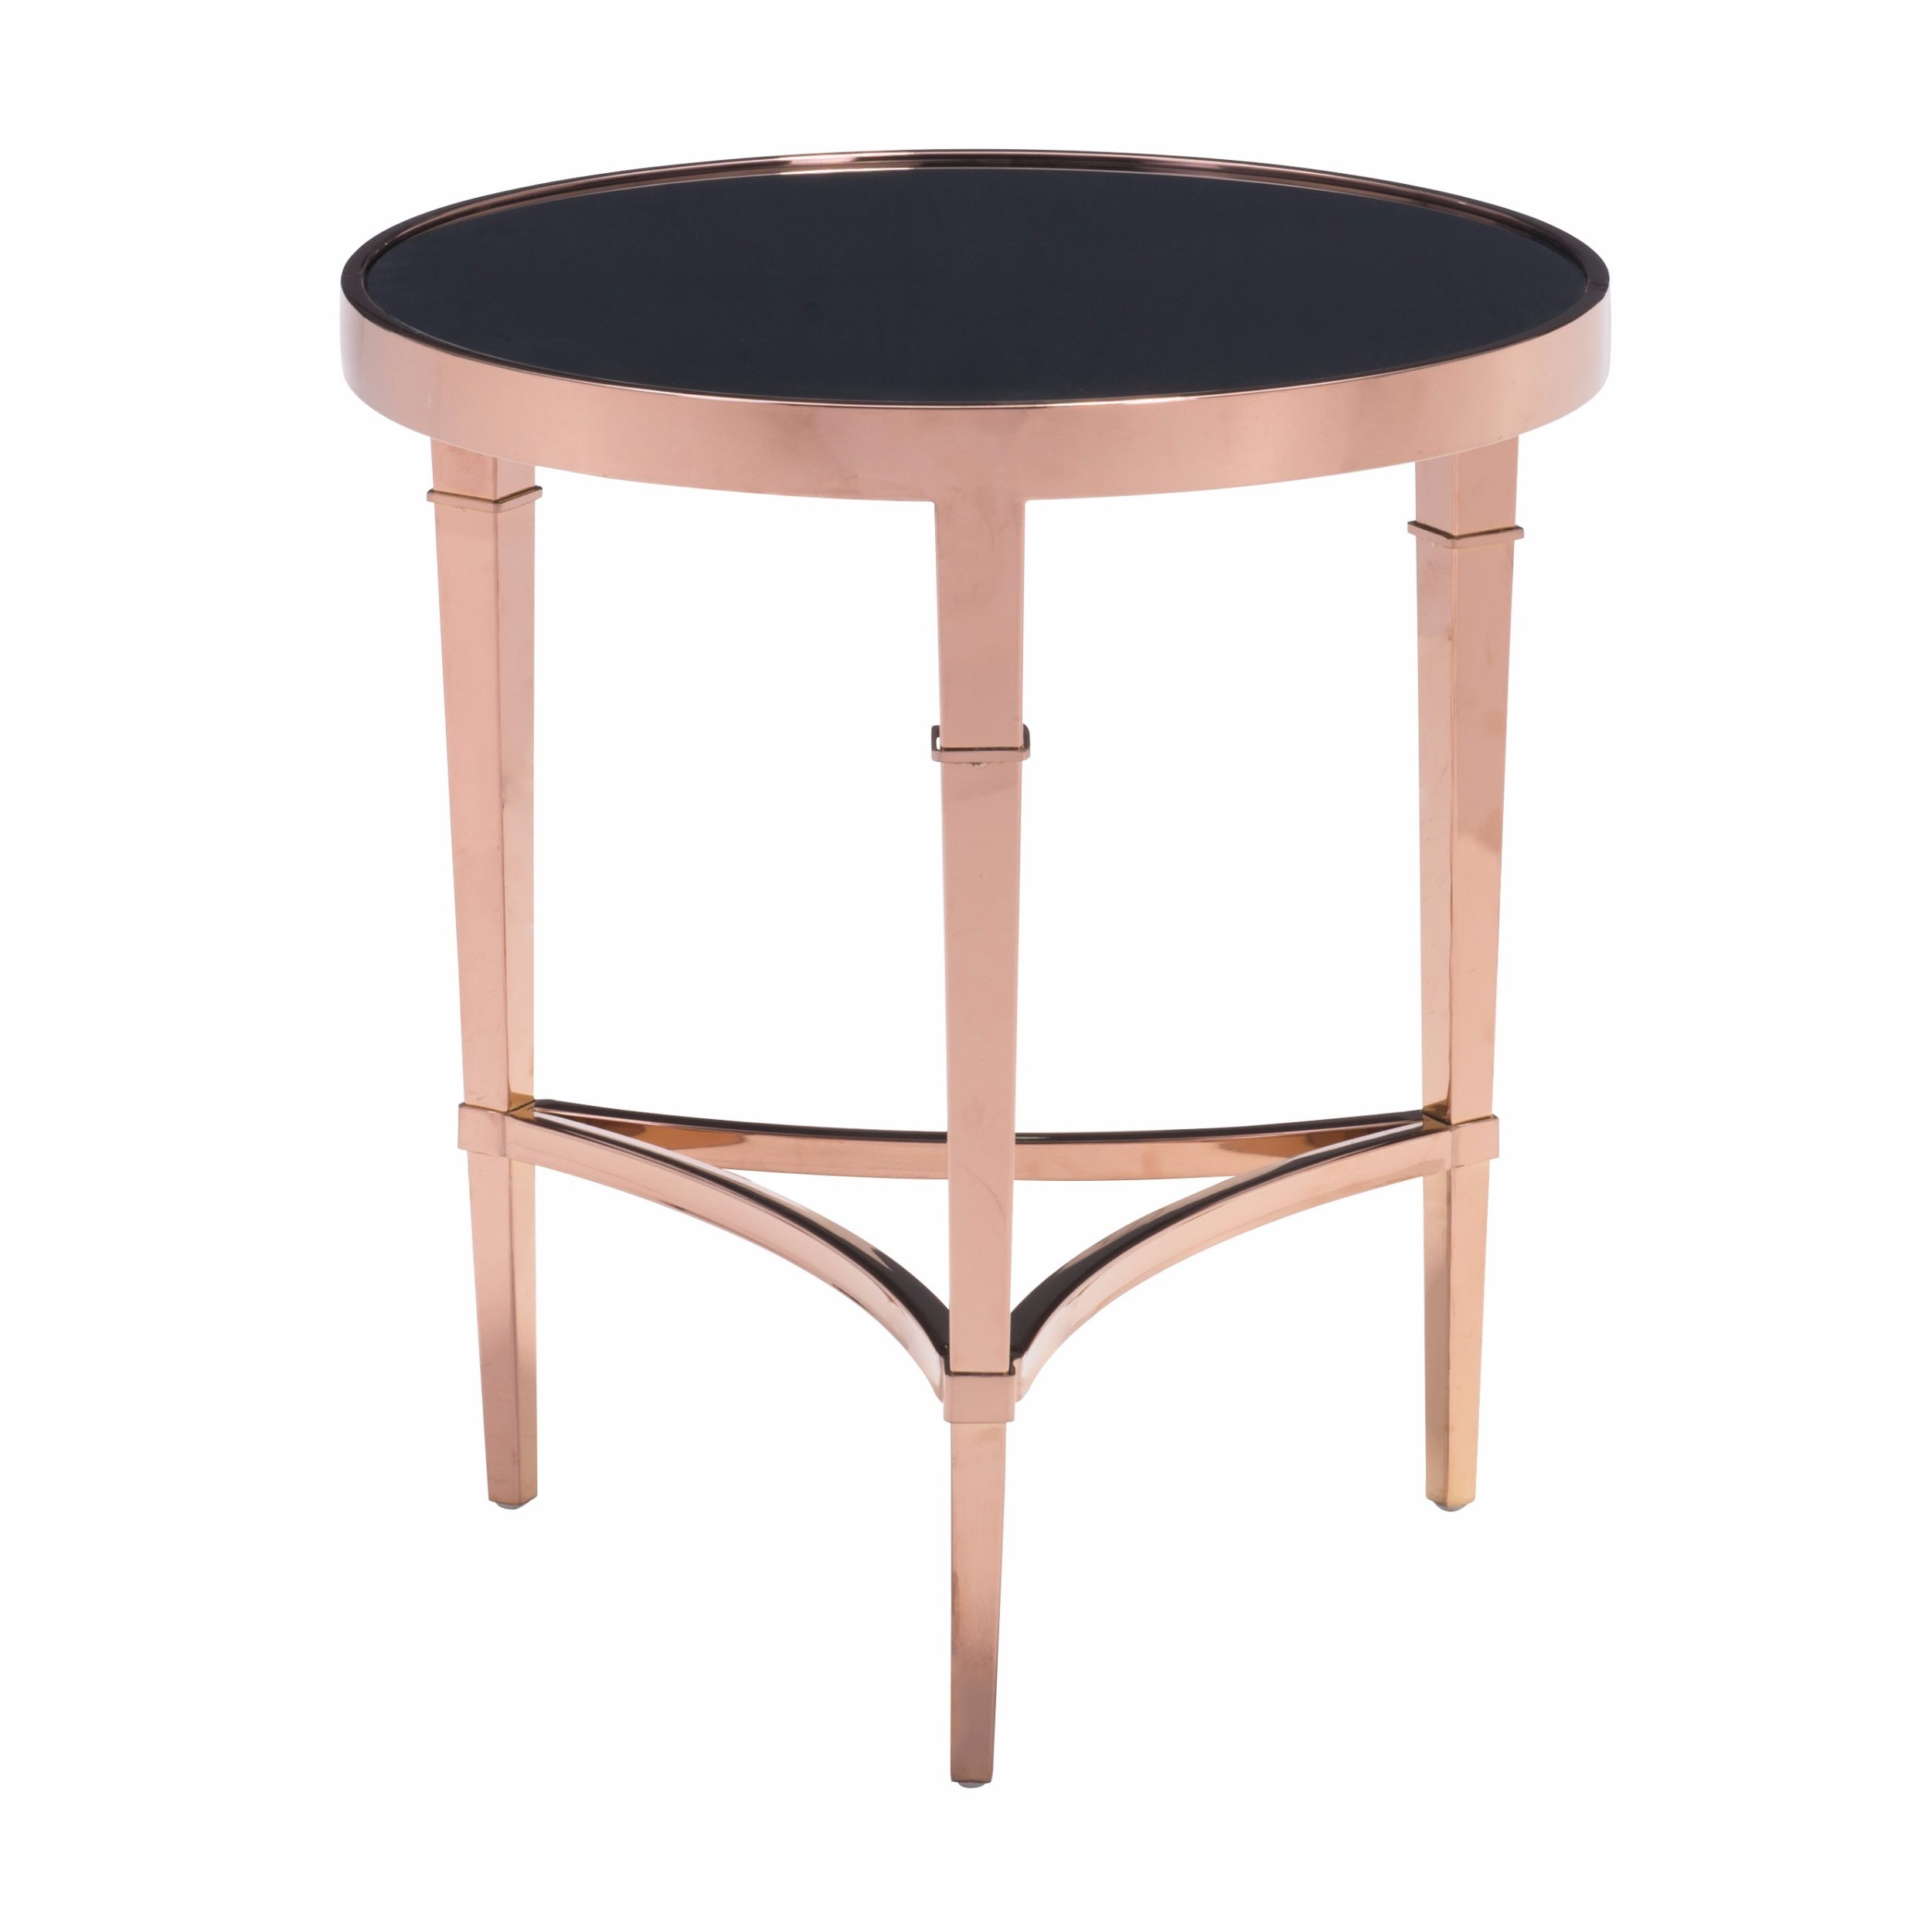 elite side table accent tables outdoor furniture metal green tiffany lamp square legs bar dining set small wine grey marble top target live edge navy blue chair sheesham wood